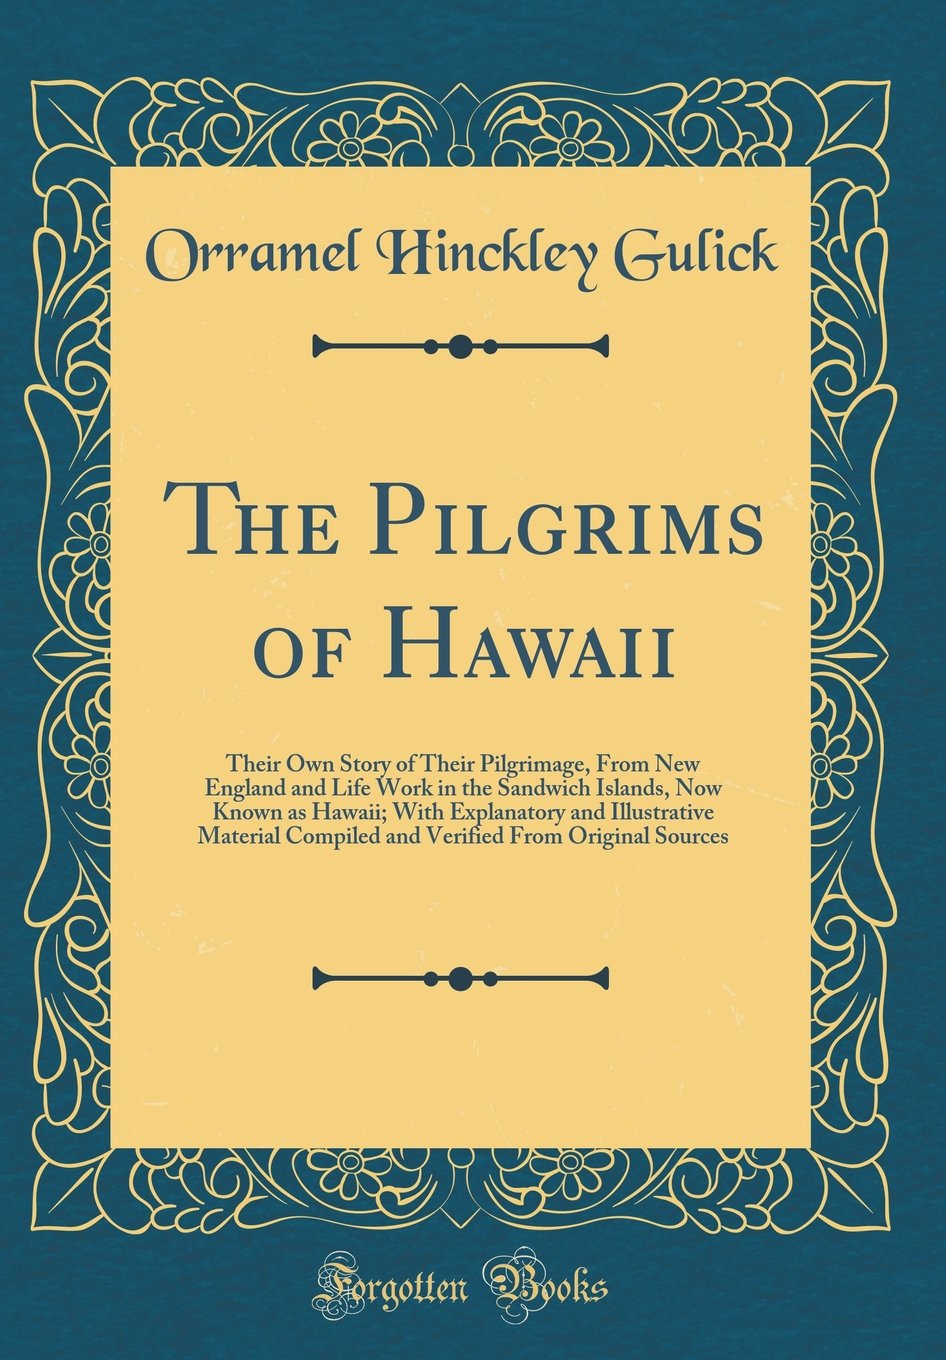 Download The Pilgrims of Hawaii: Their Own Story of Their Pilgrimage, From New England and Life Work in the Sandwich Islands, Now Known as Hawaii; With ... From Original Sources (Classic Reprint) pdf